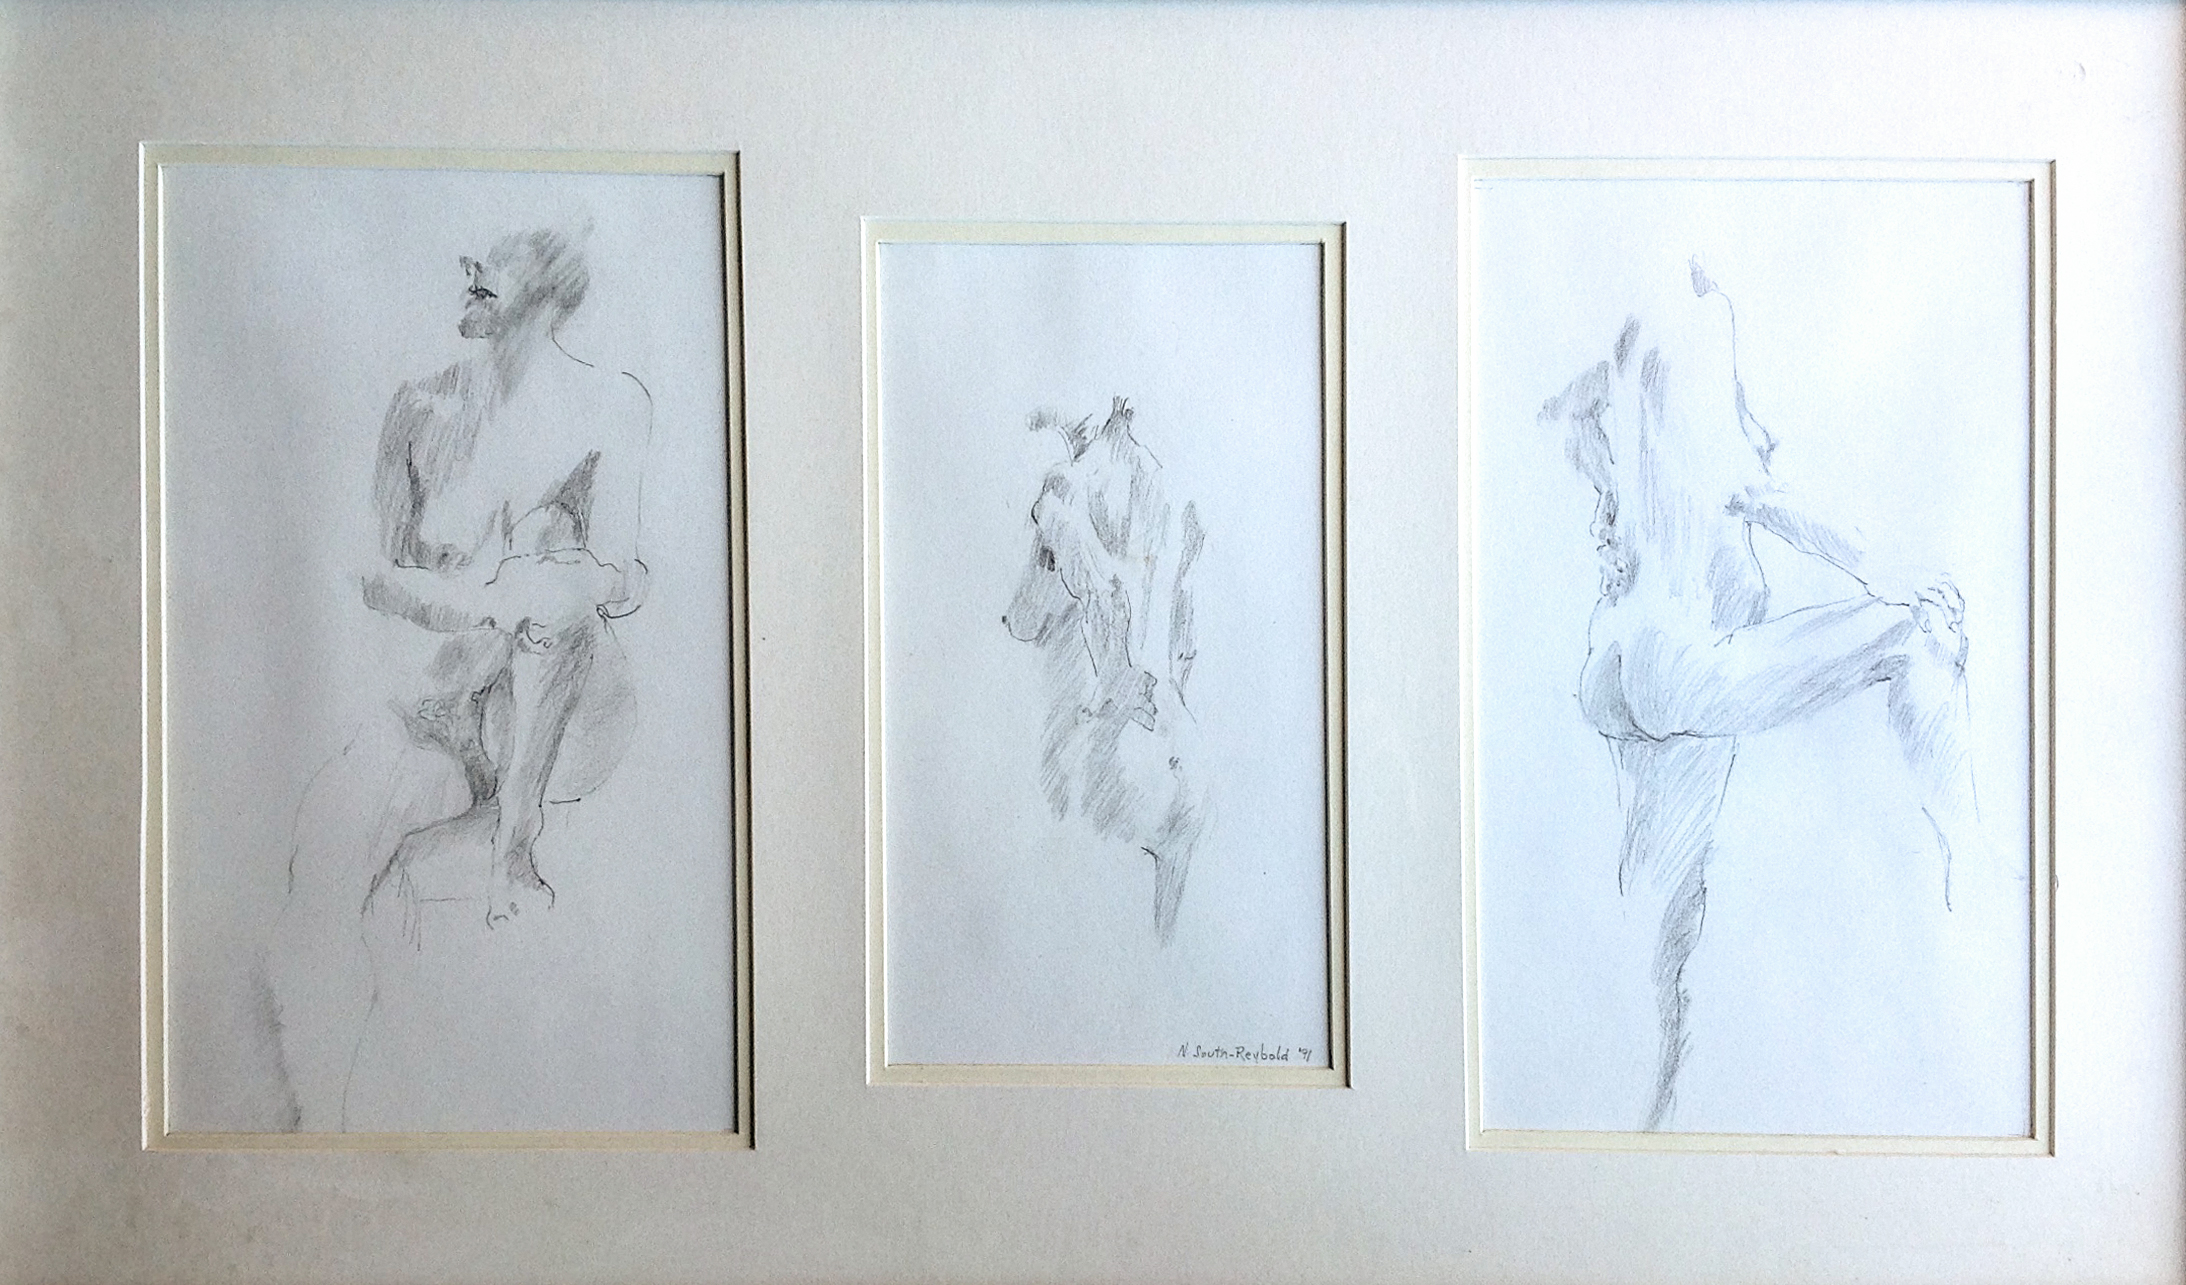 """Take Off 10 Lbs. - Pencil - 18"""" x 30"""" - Collection of John Gause"""